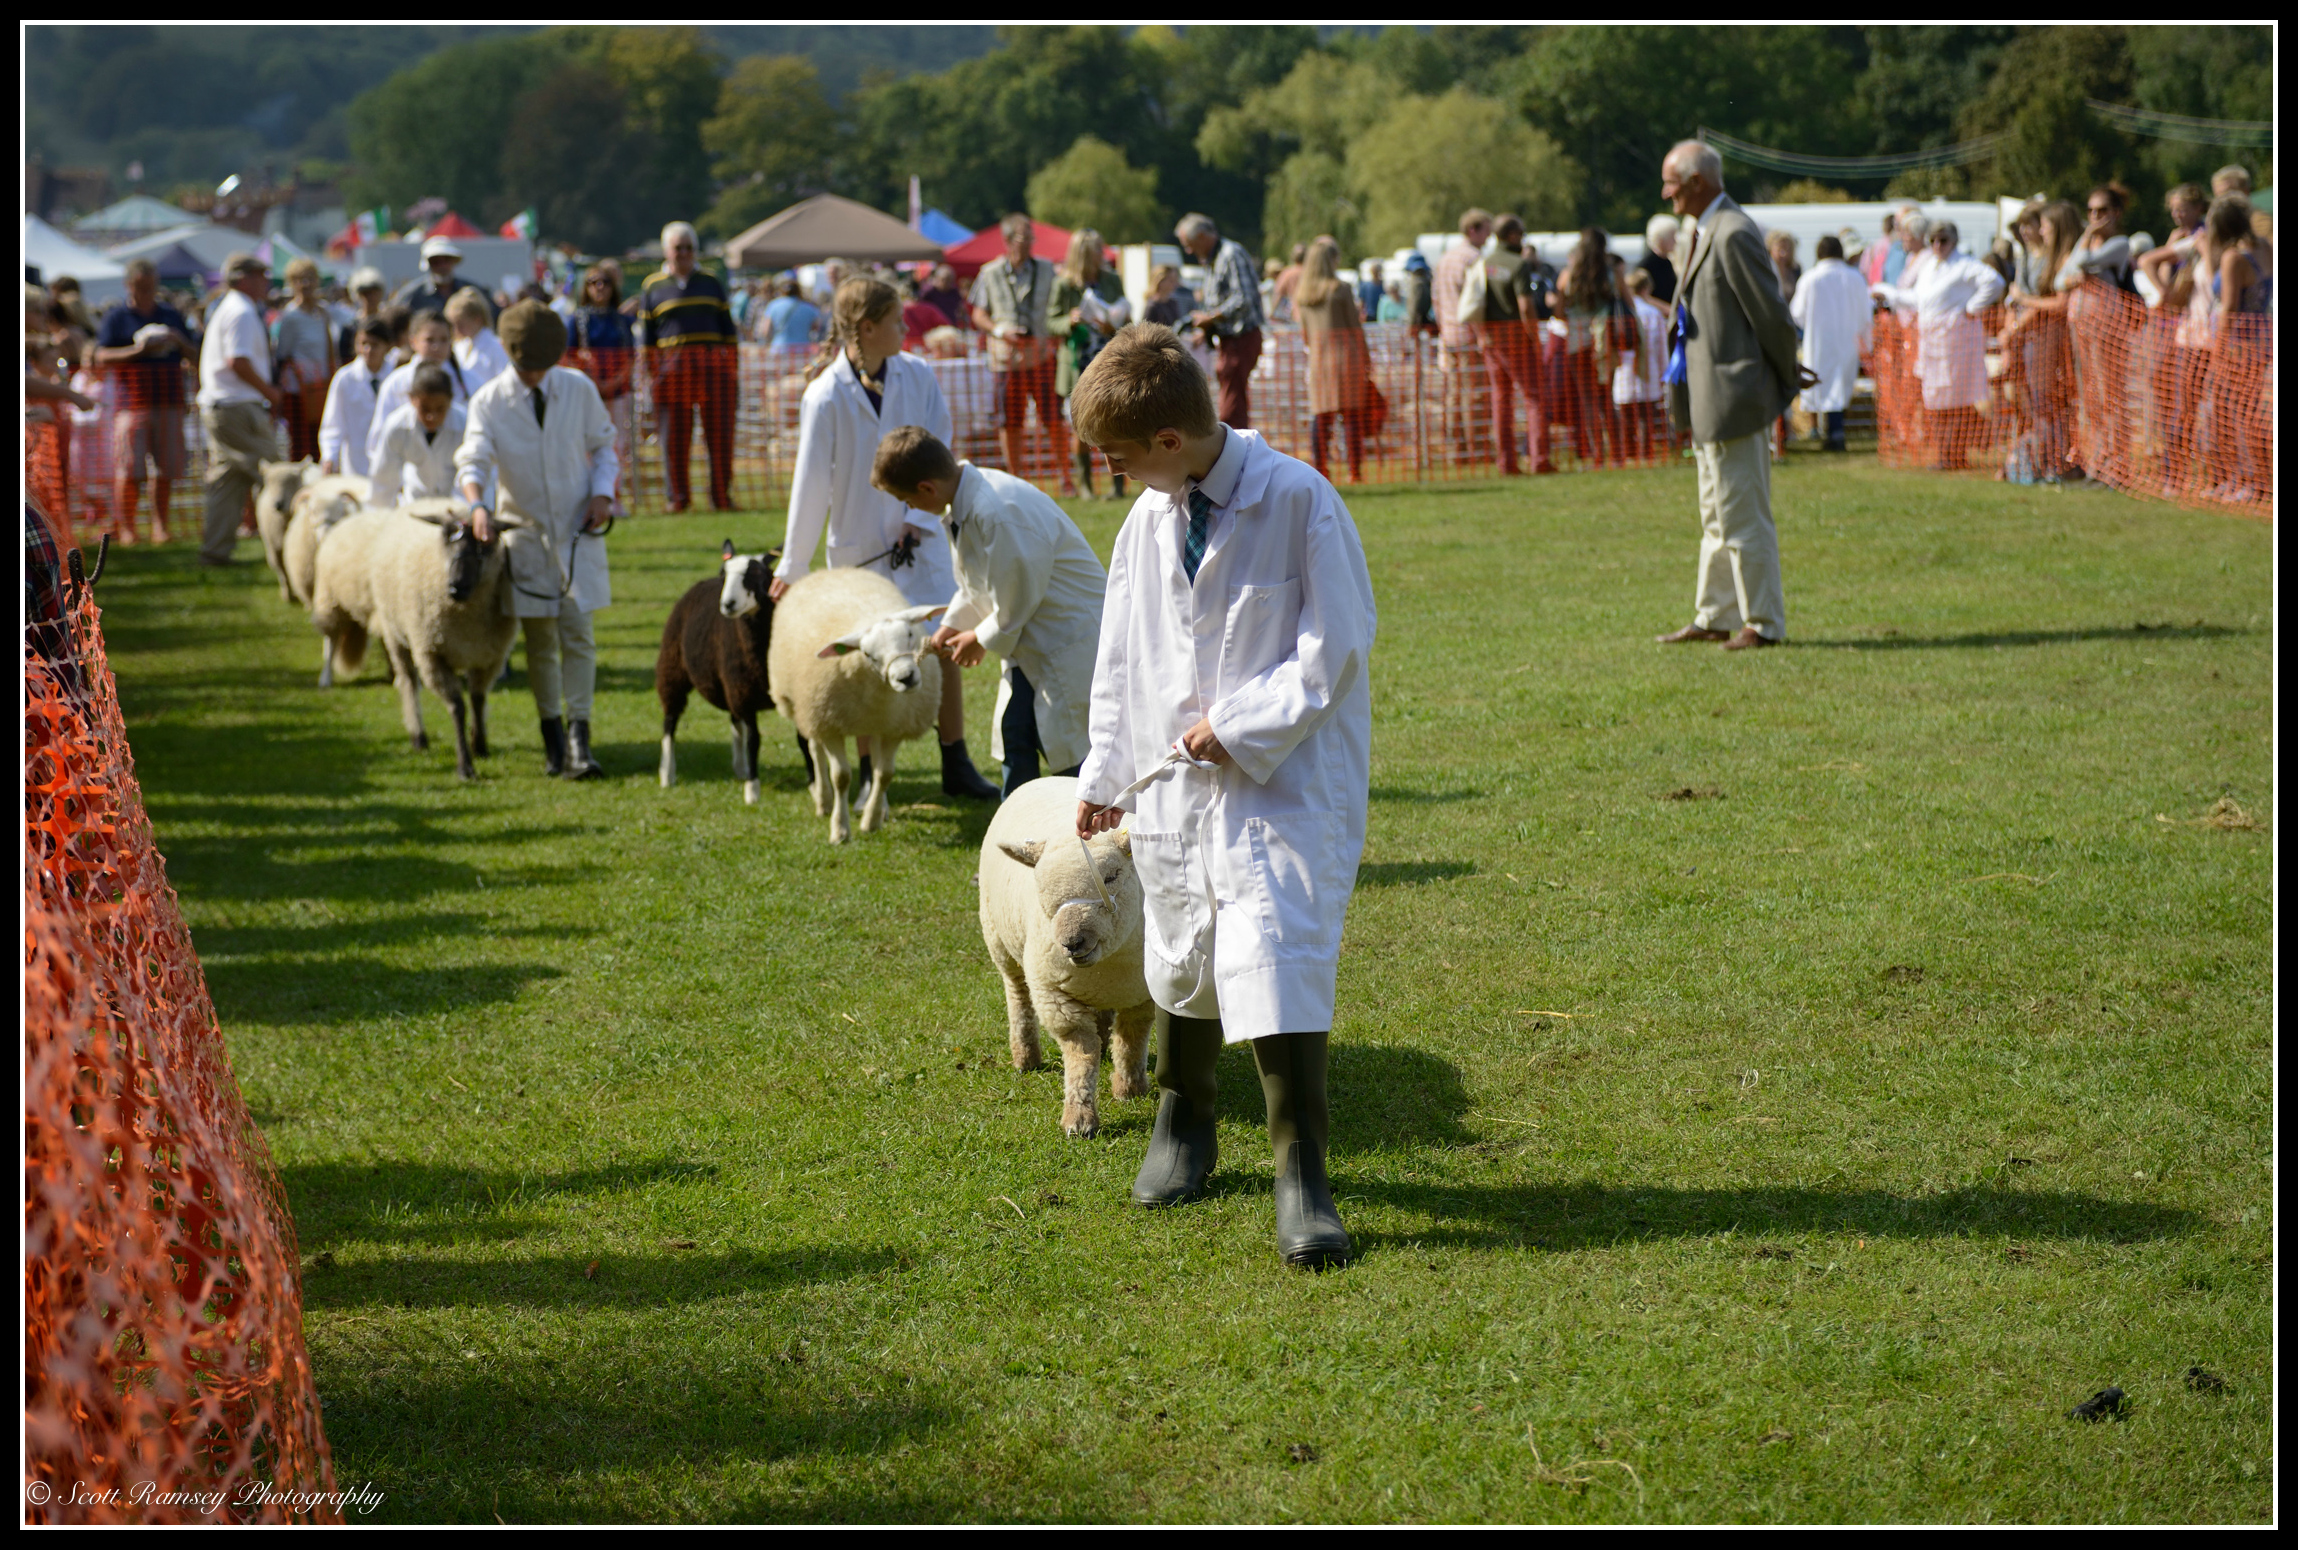 A judge inspects the sheep as they are walked around the main arena during a competition at the Findon Sheep Fair.